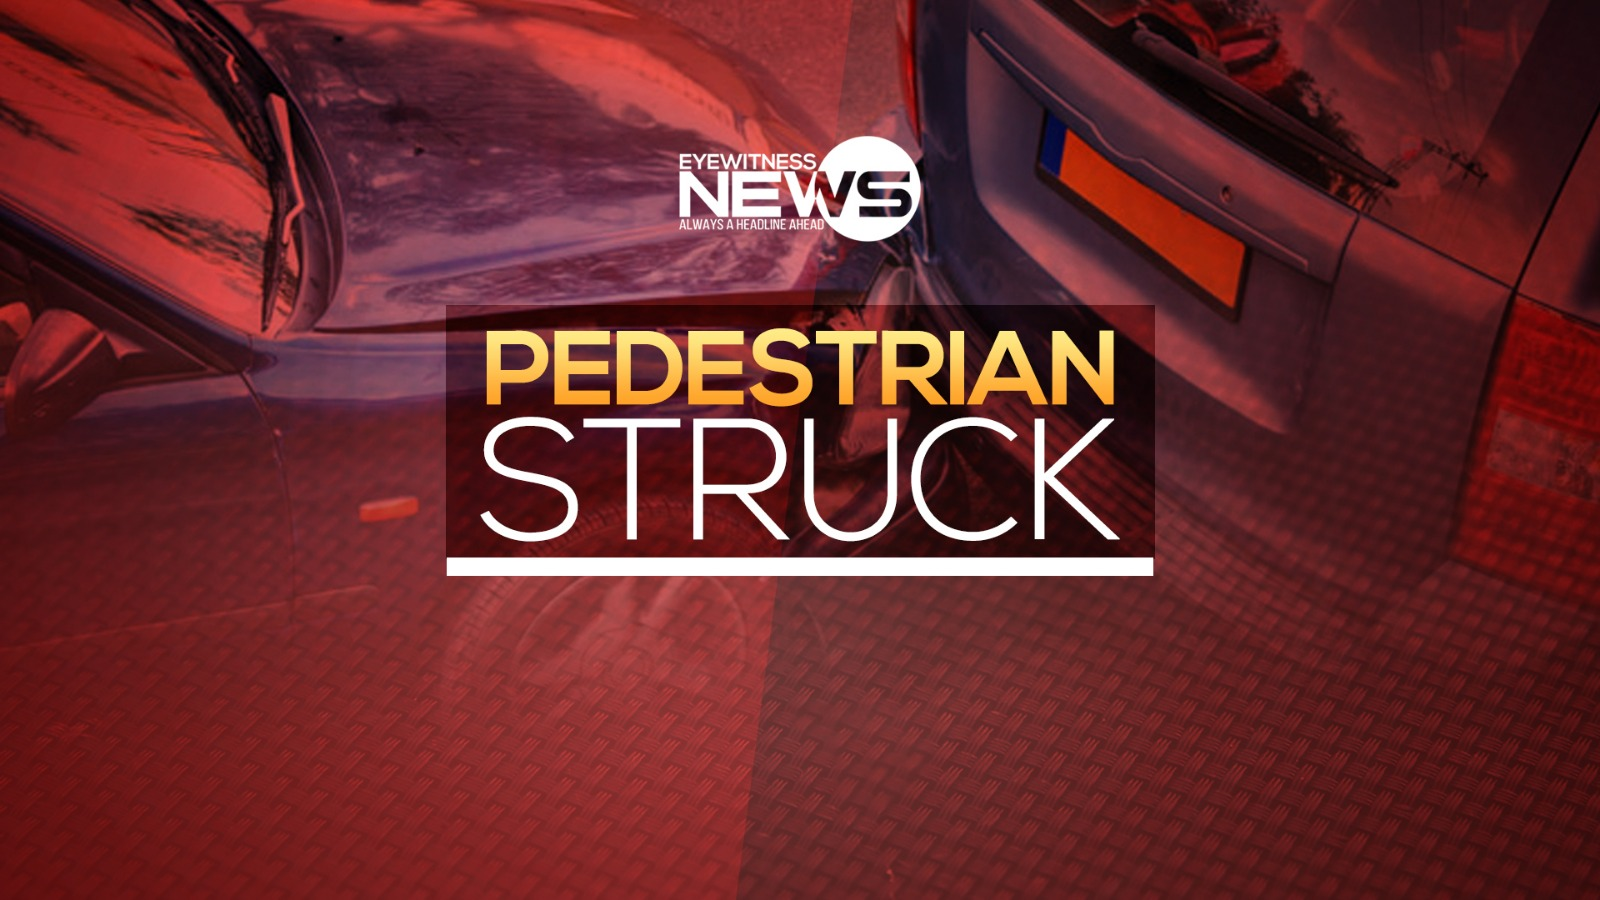 Pedestrian fights for life in hospital